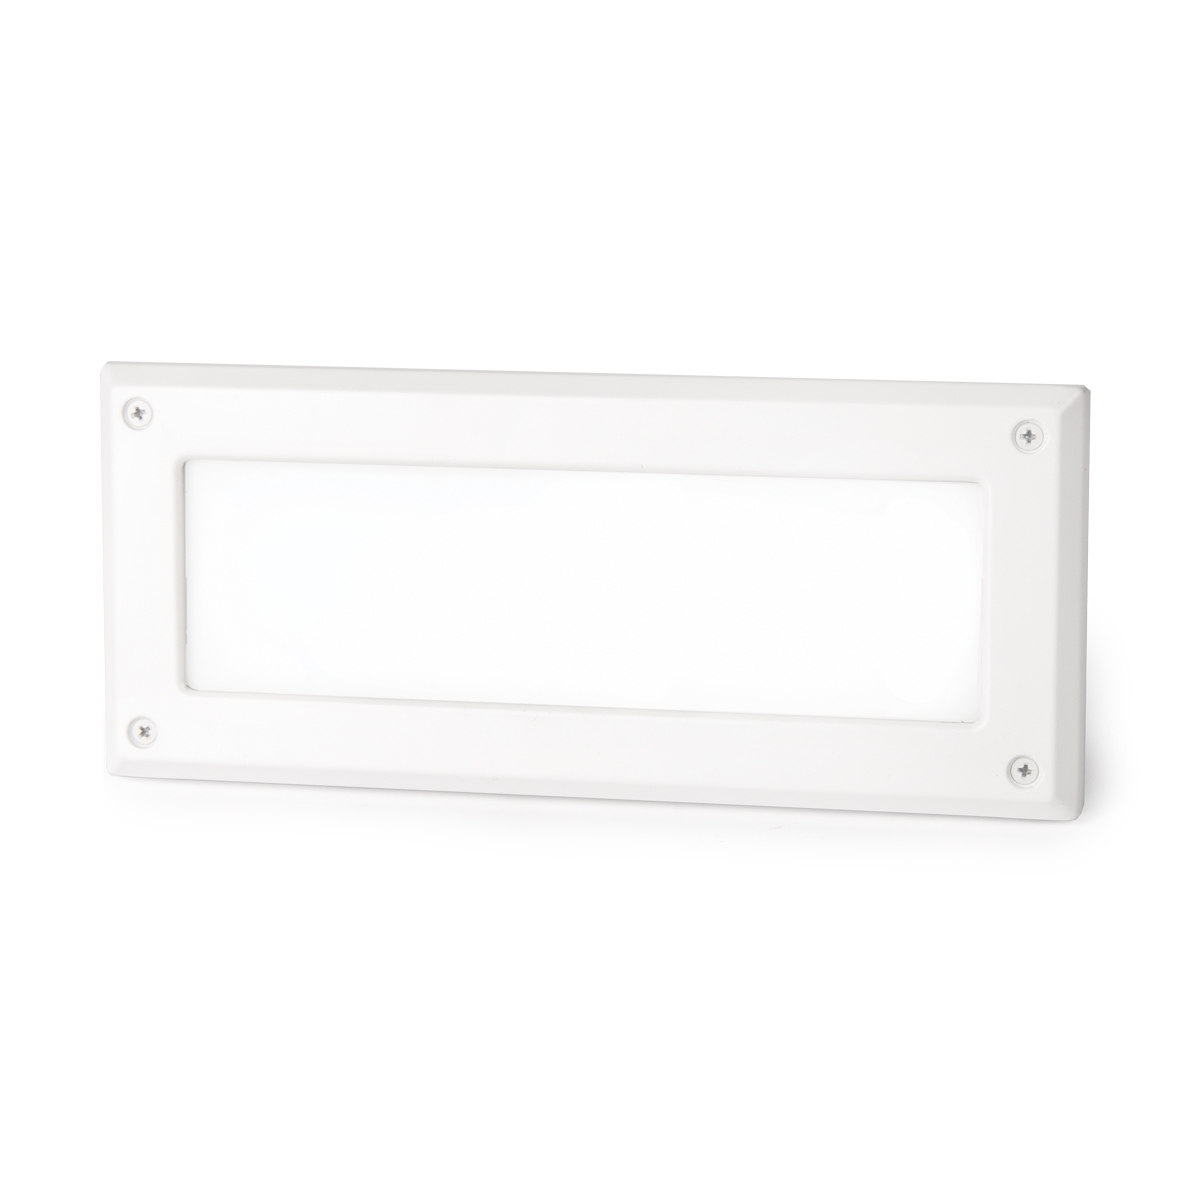 Led Brick Light From The Endurance Collection By Wac